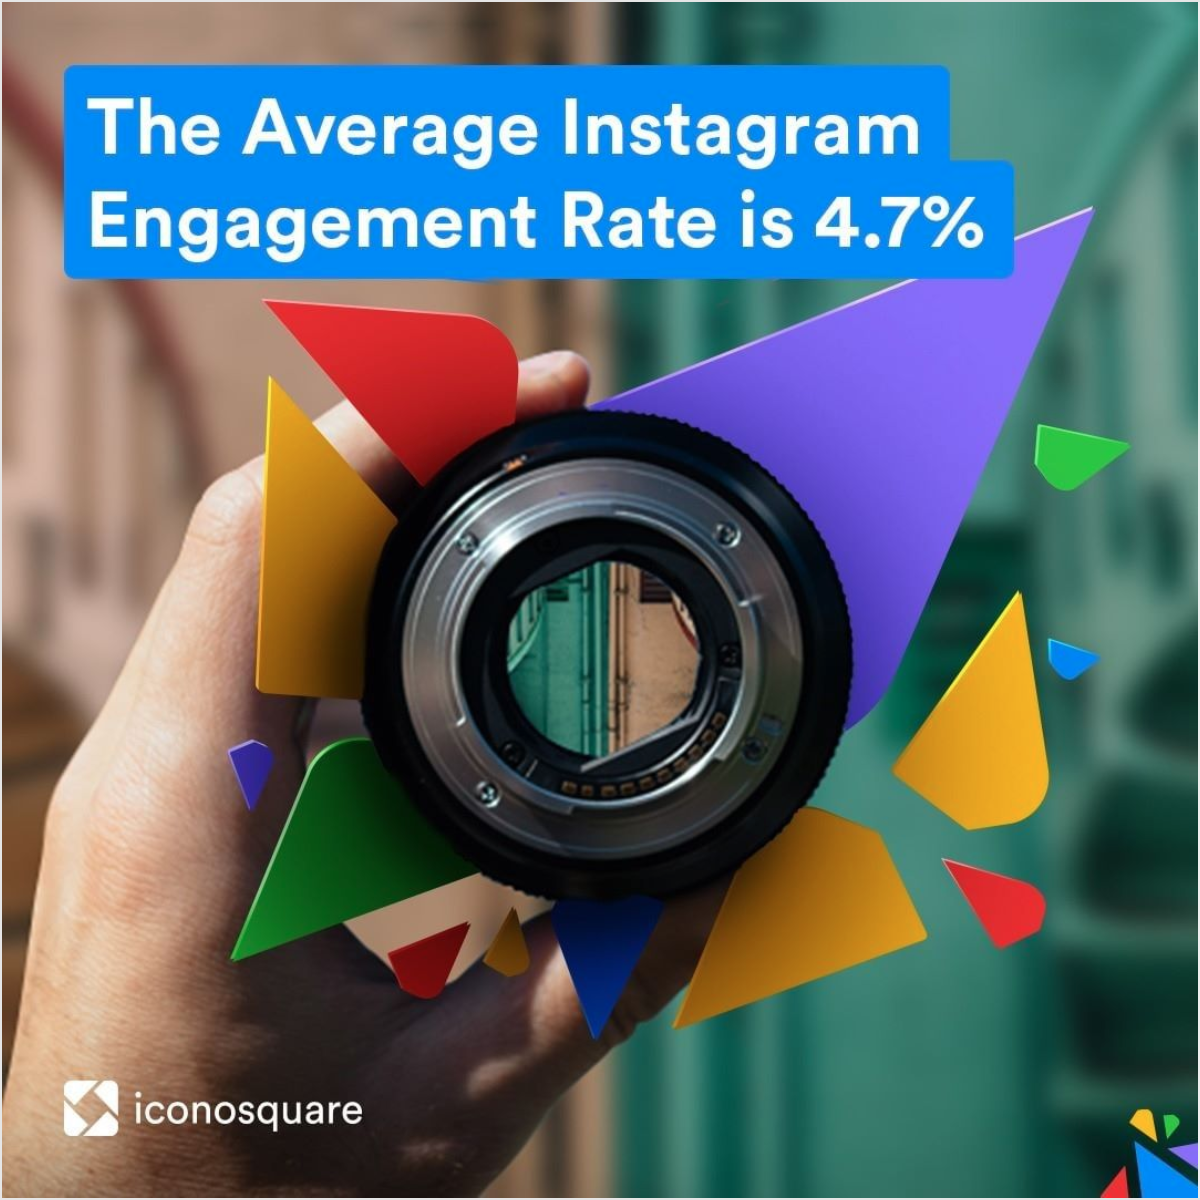 Copy and creative for an Instagram ad